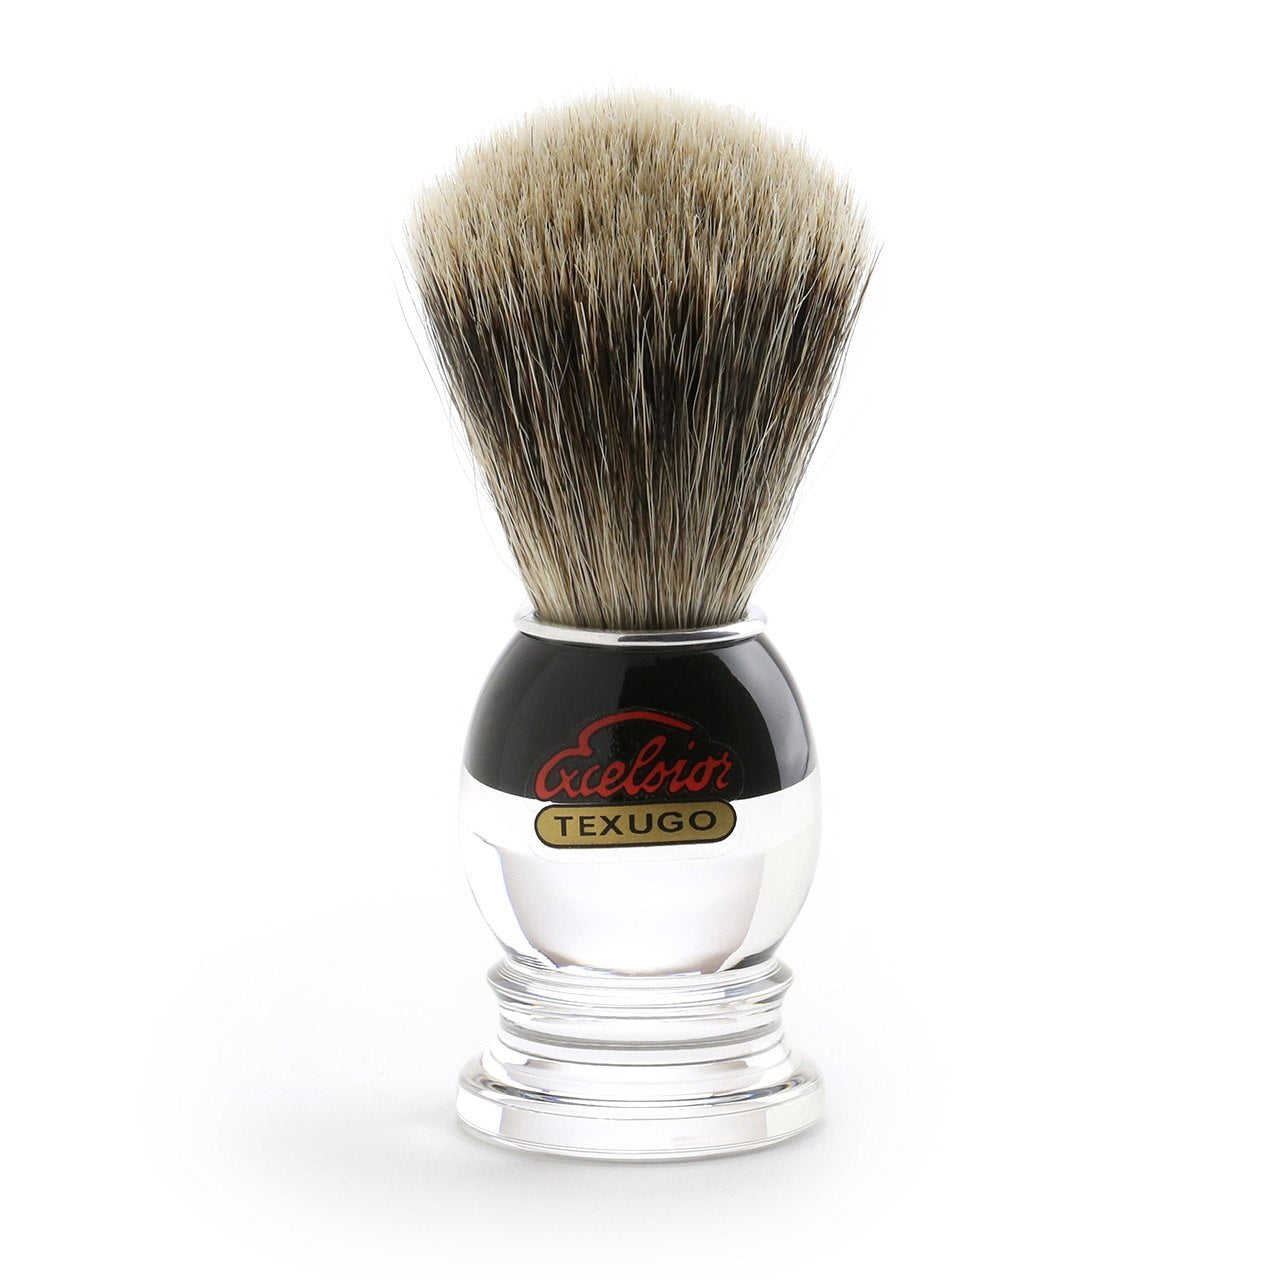 Semogue Silver Tip Shaving Brush, black and clear retro acrylic handle